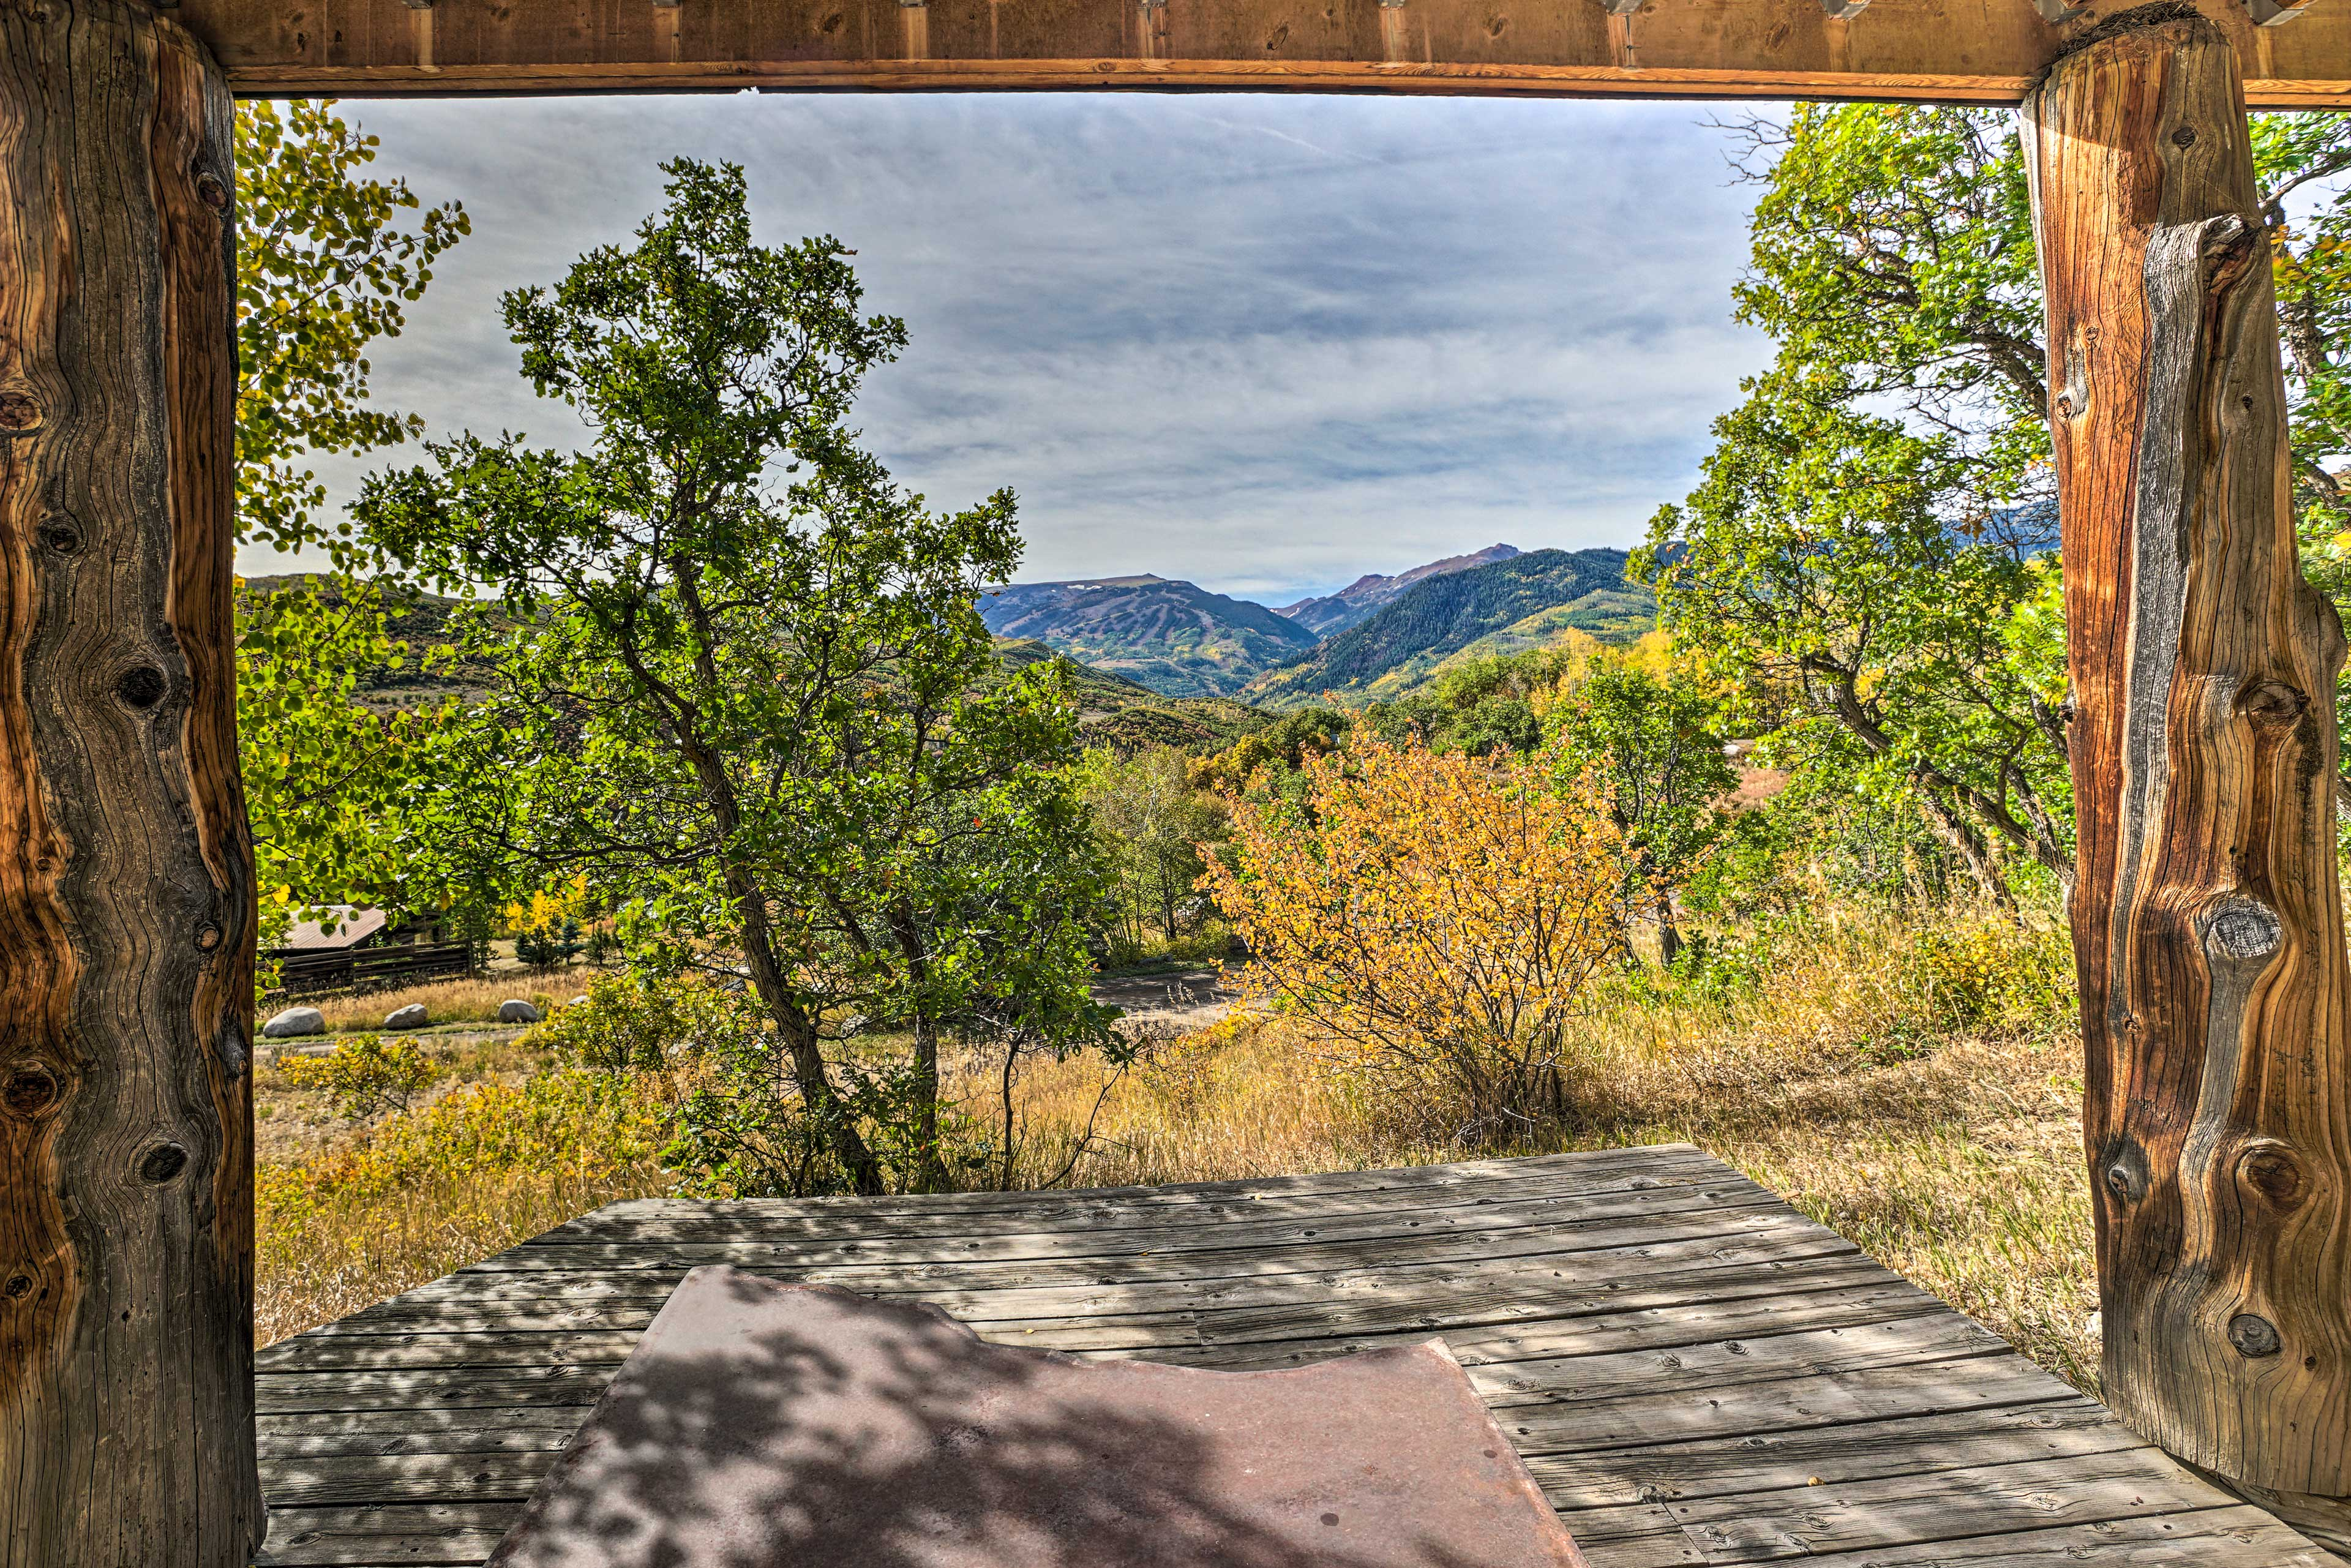 Breathe in the fresh mountain air as you take in all that the area has to offer.